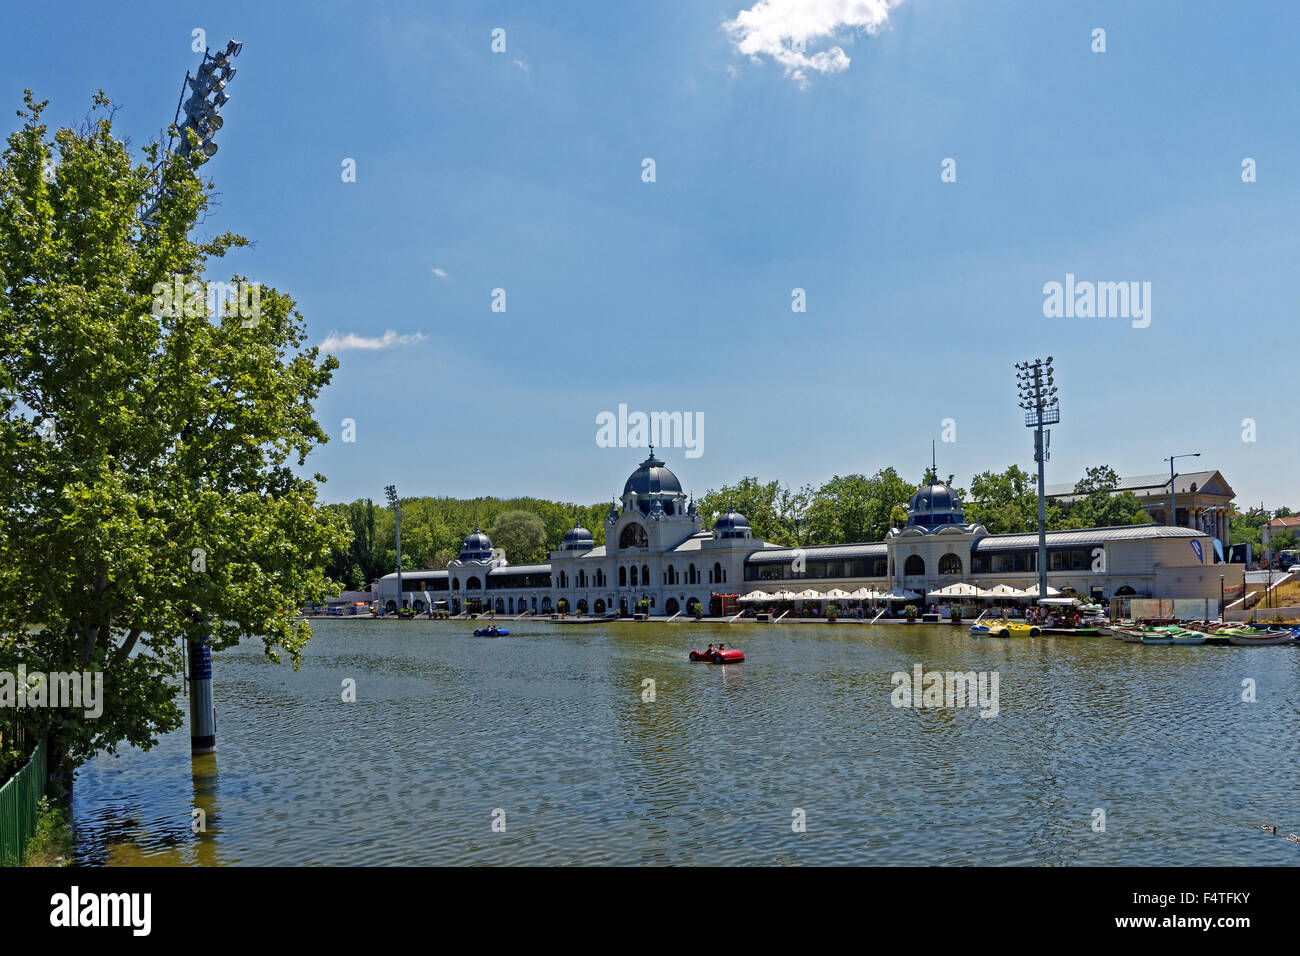 Town groves, Varosliget, sports center, oar pond - Stock Image